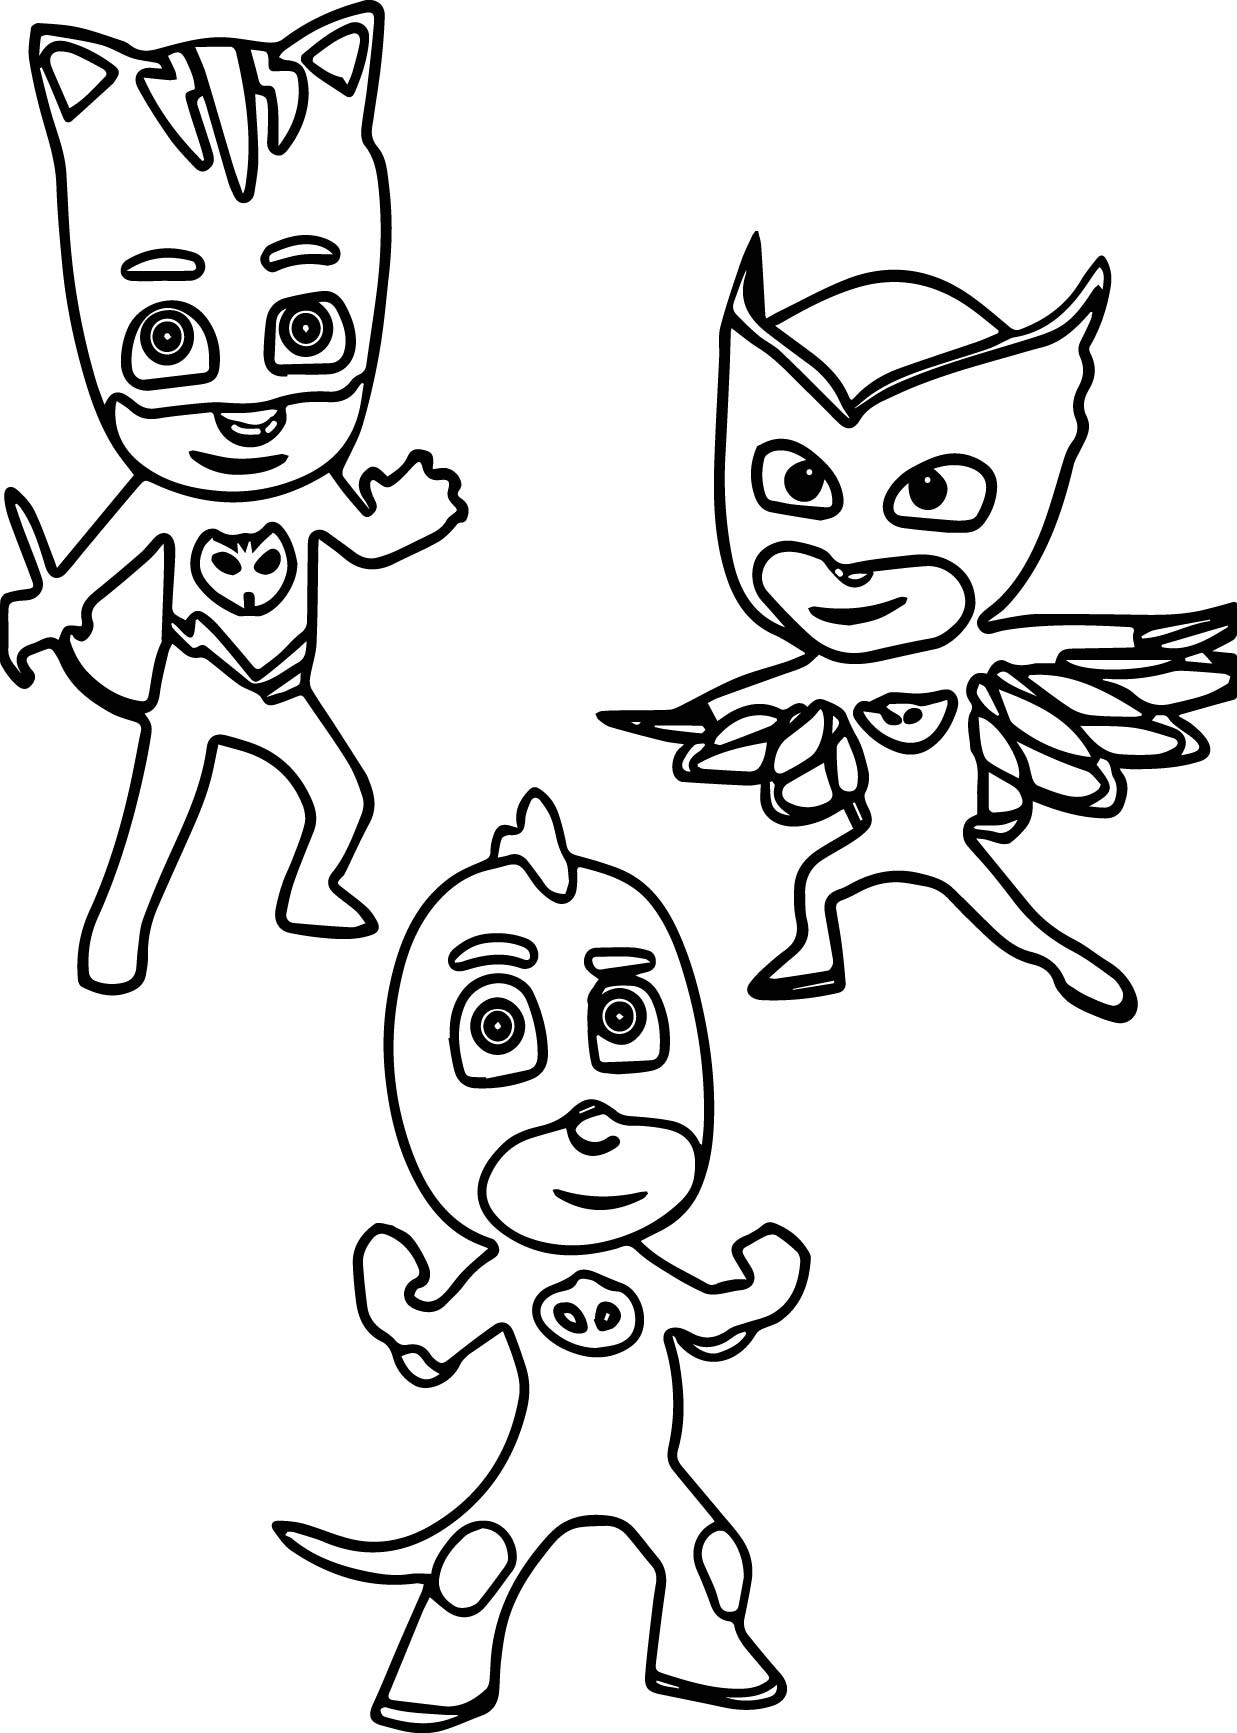 1237x1733 Coloring Pages For Pj Masks Best Of Catboy Coloring Page